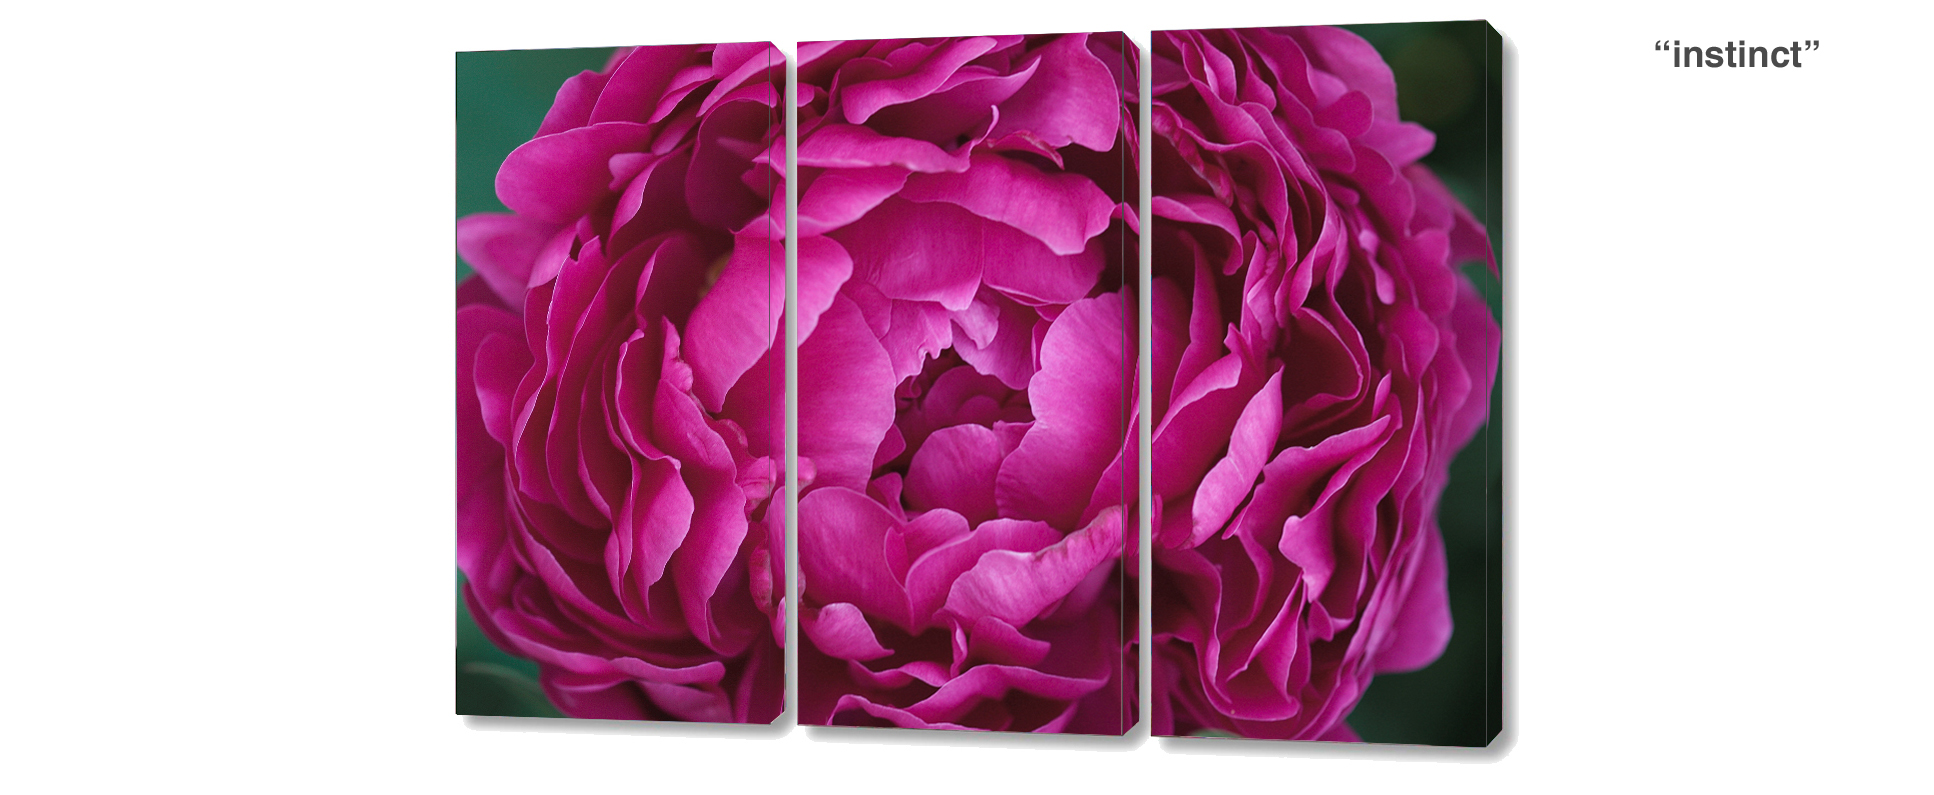 triptych peony - 3 Piece limited edition giclee canvas floral wall decor